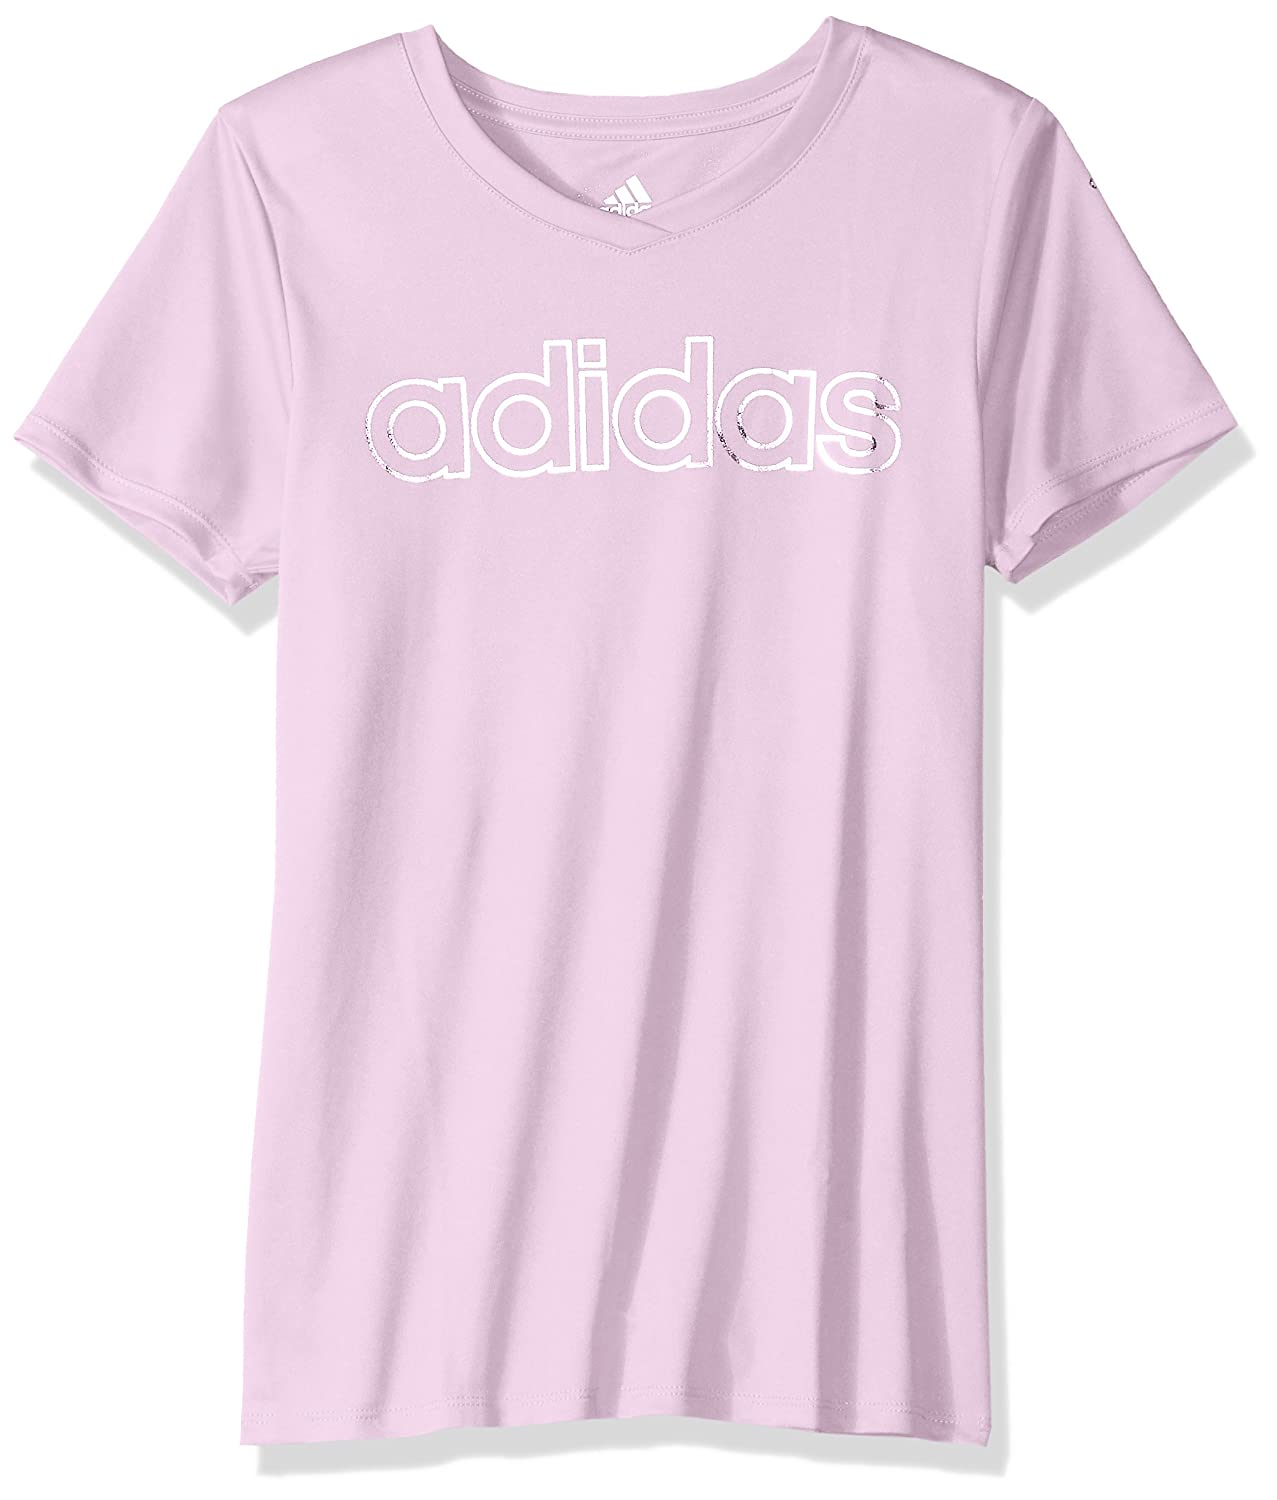 920847a27cf The climalite v-neck tee features short sleeves and lapped v-neck. Screen  printed silver foil linear Adidas across chest and foil Adidas brand mark  on left ...